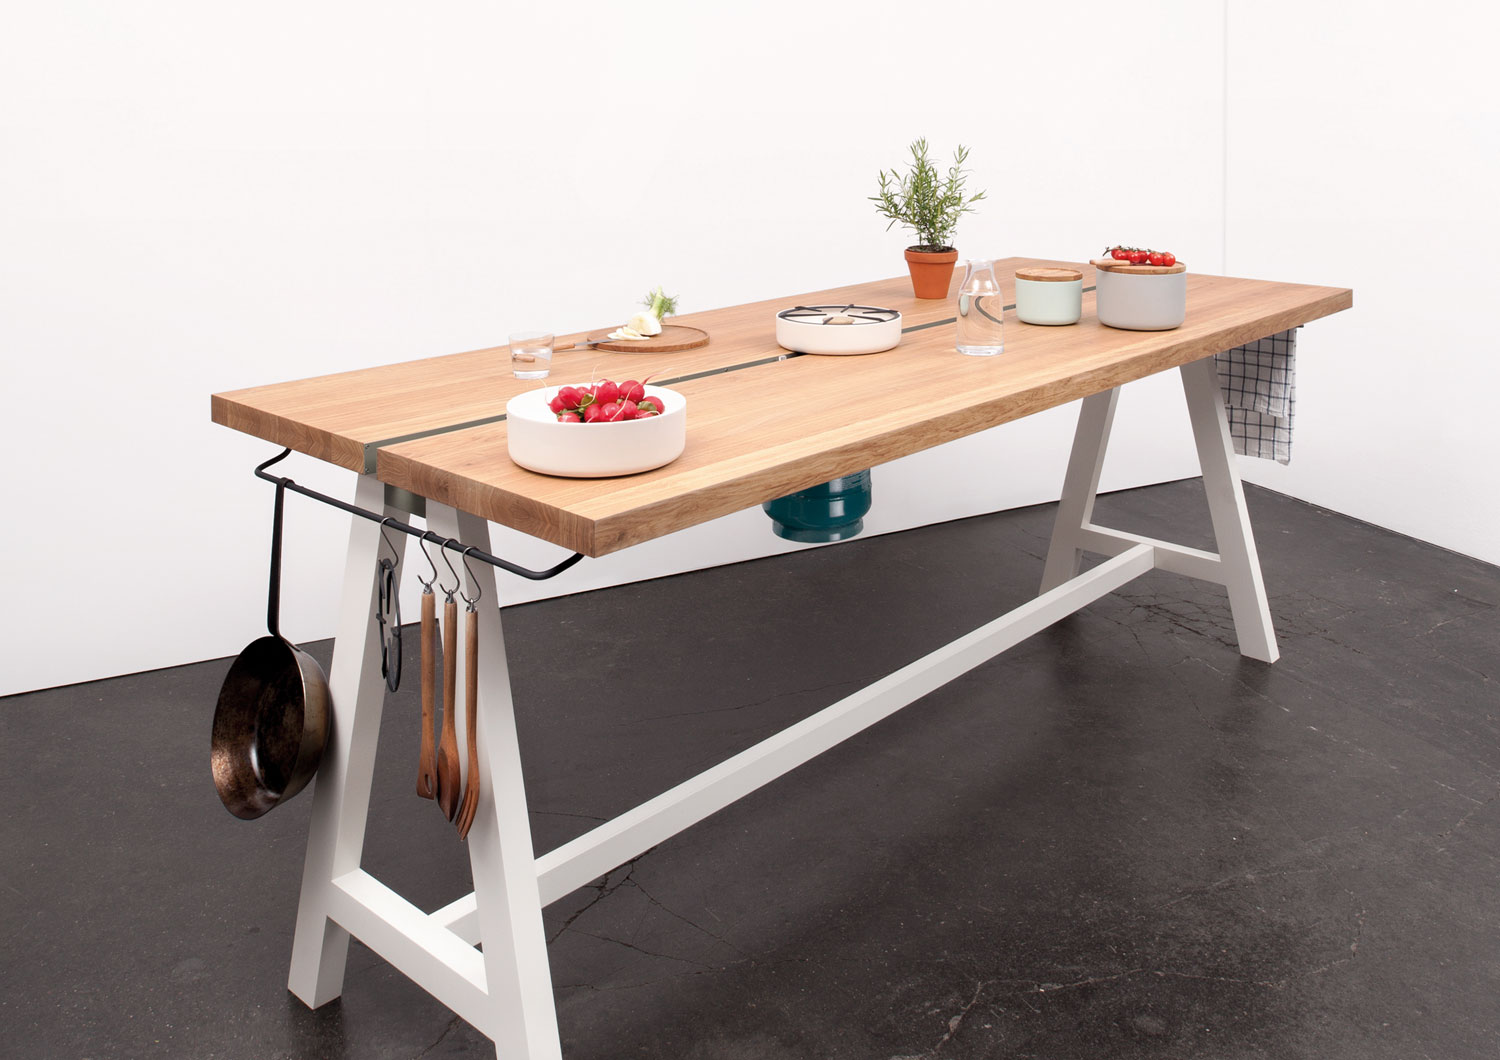 The Cooking Table Moritz Putzier | Yellowtrace